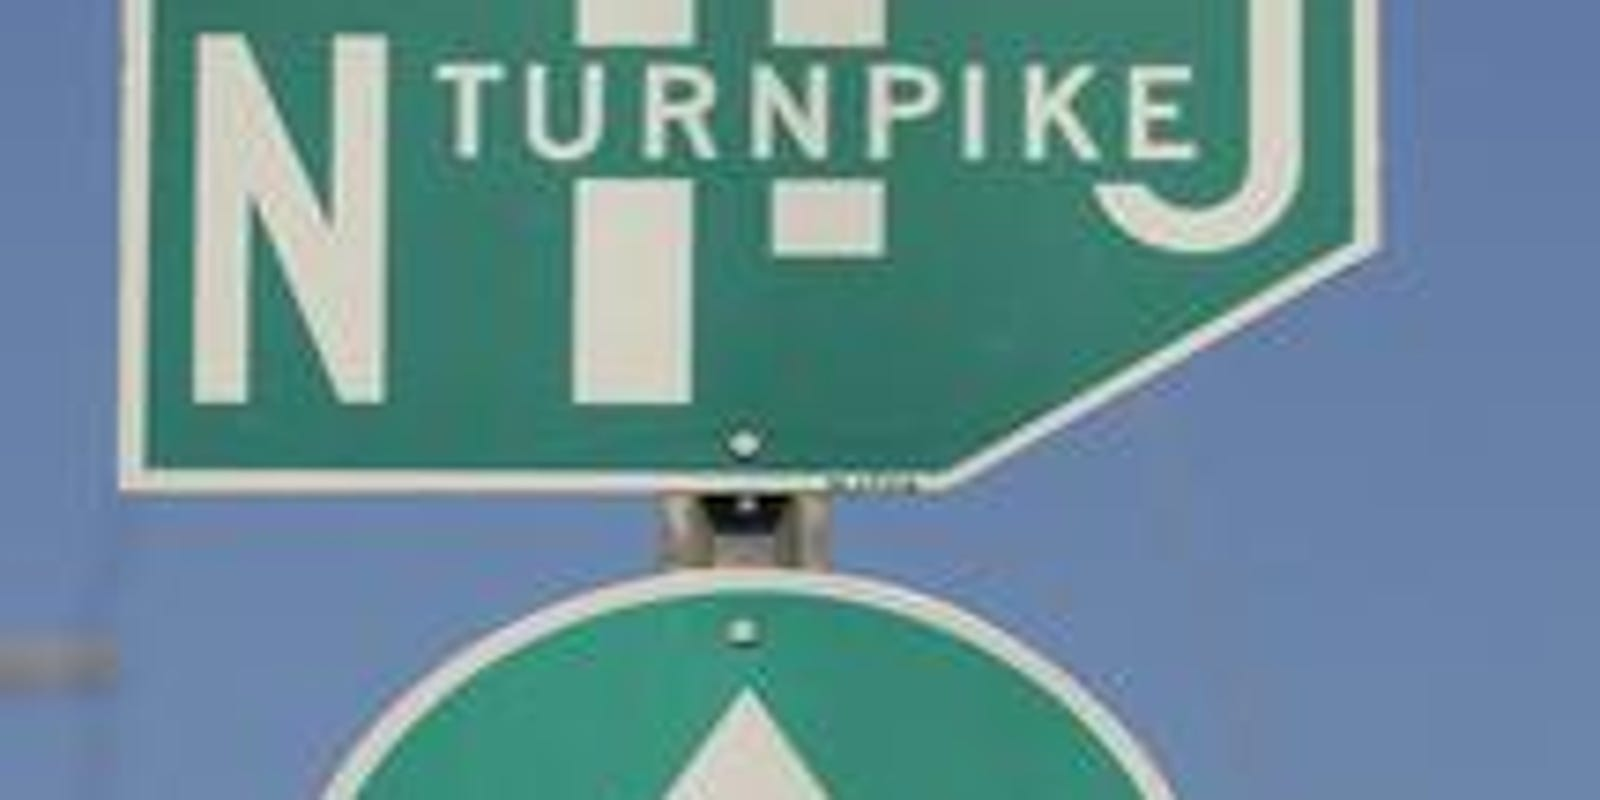 North Carolina woman dies in Turnpike crash in Cherry Hill